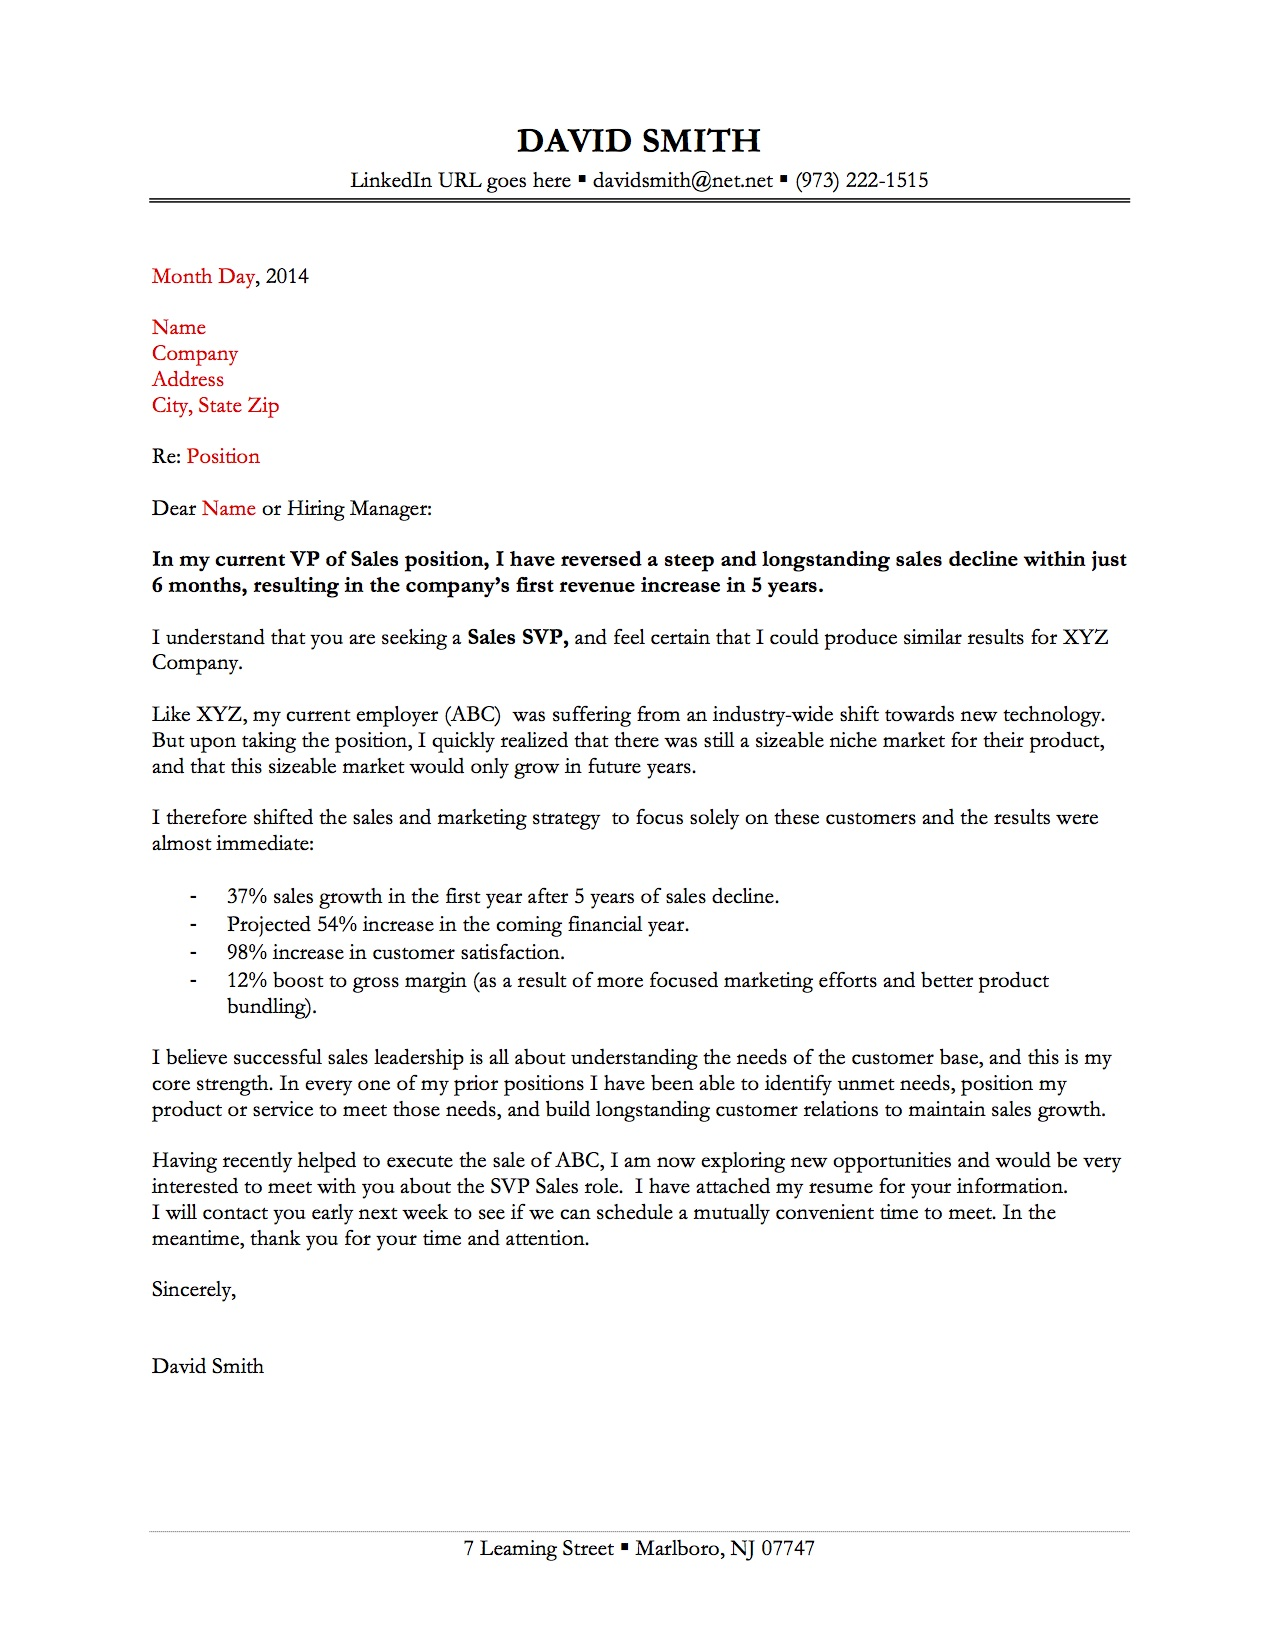 Sample Cover Letter 2